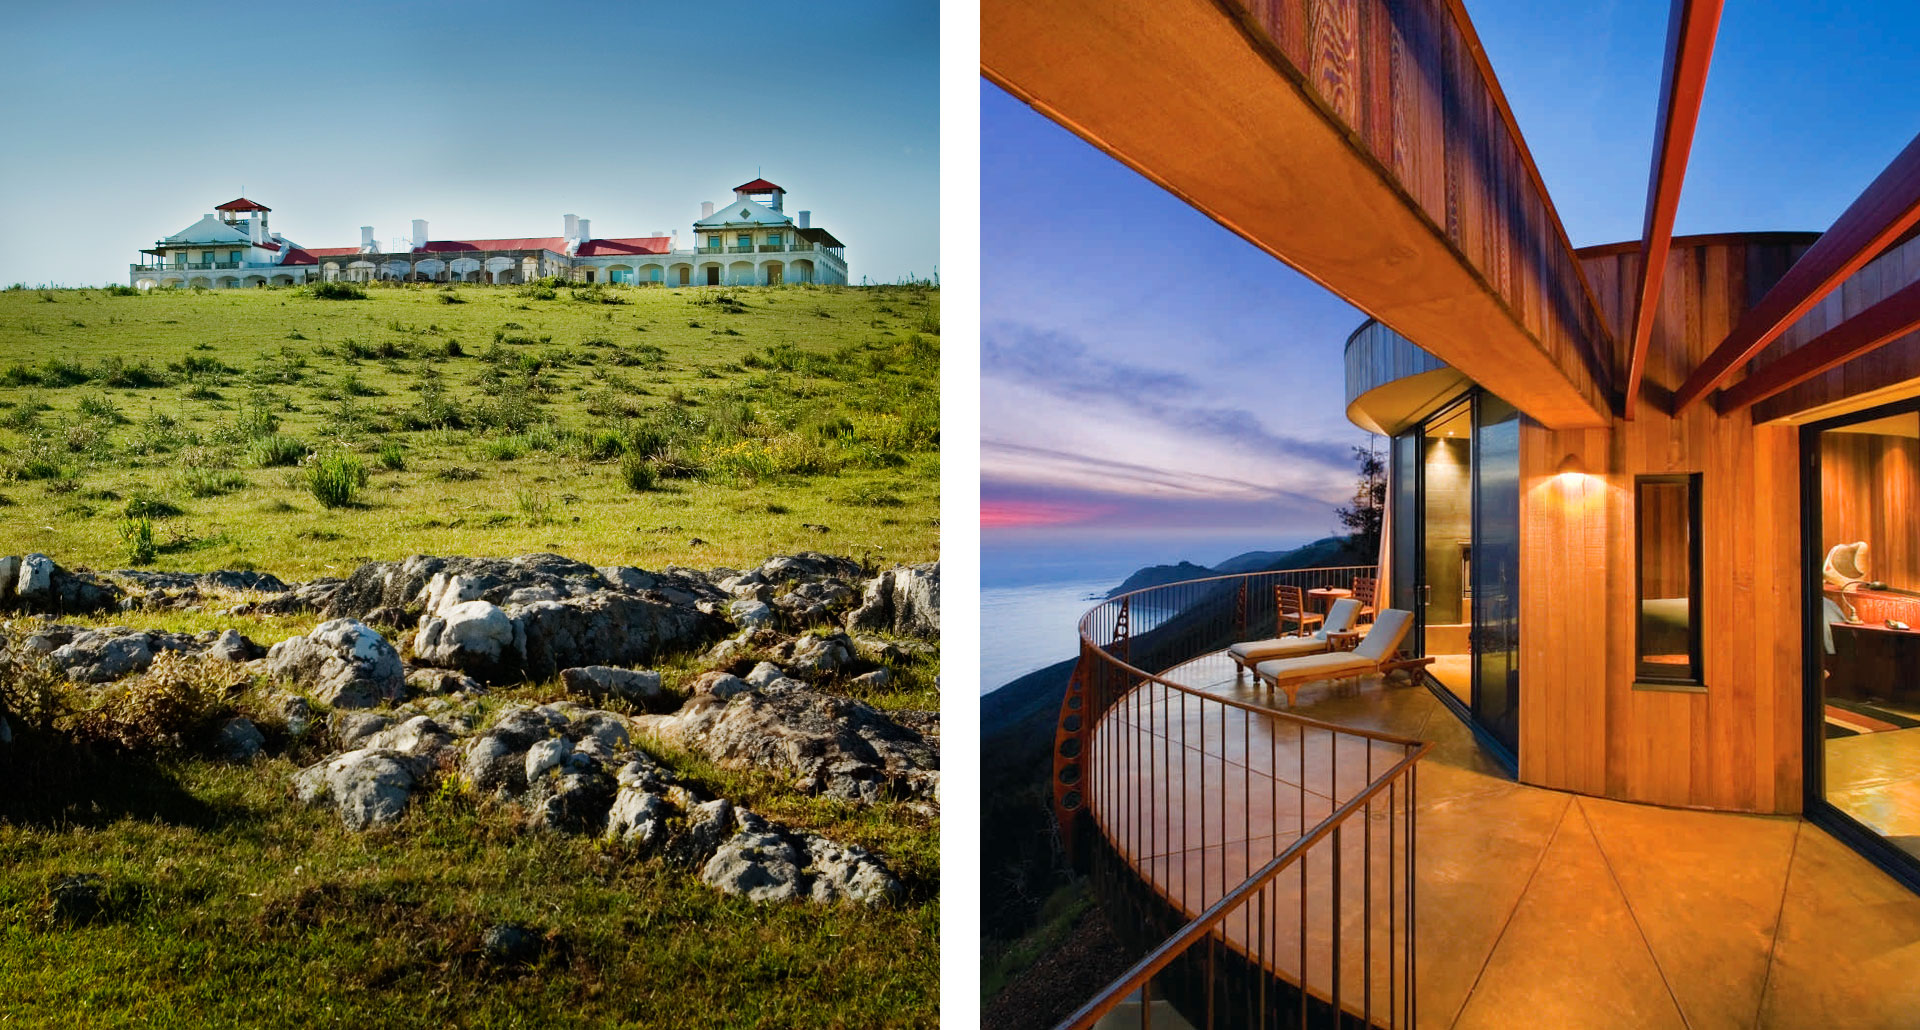 Post Ranch Inn - boutique hotel in Big Sur and Estancia Vik - boutique hotel in Jose Ignacio